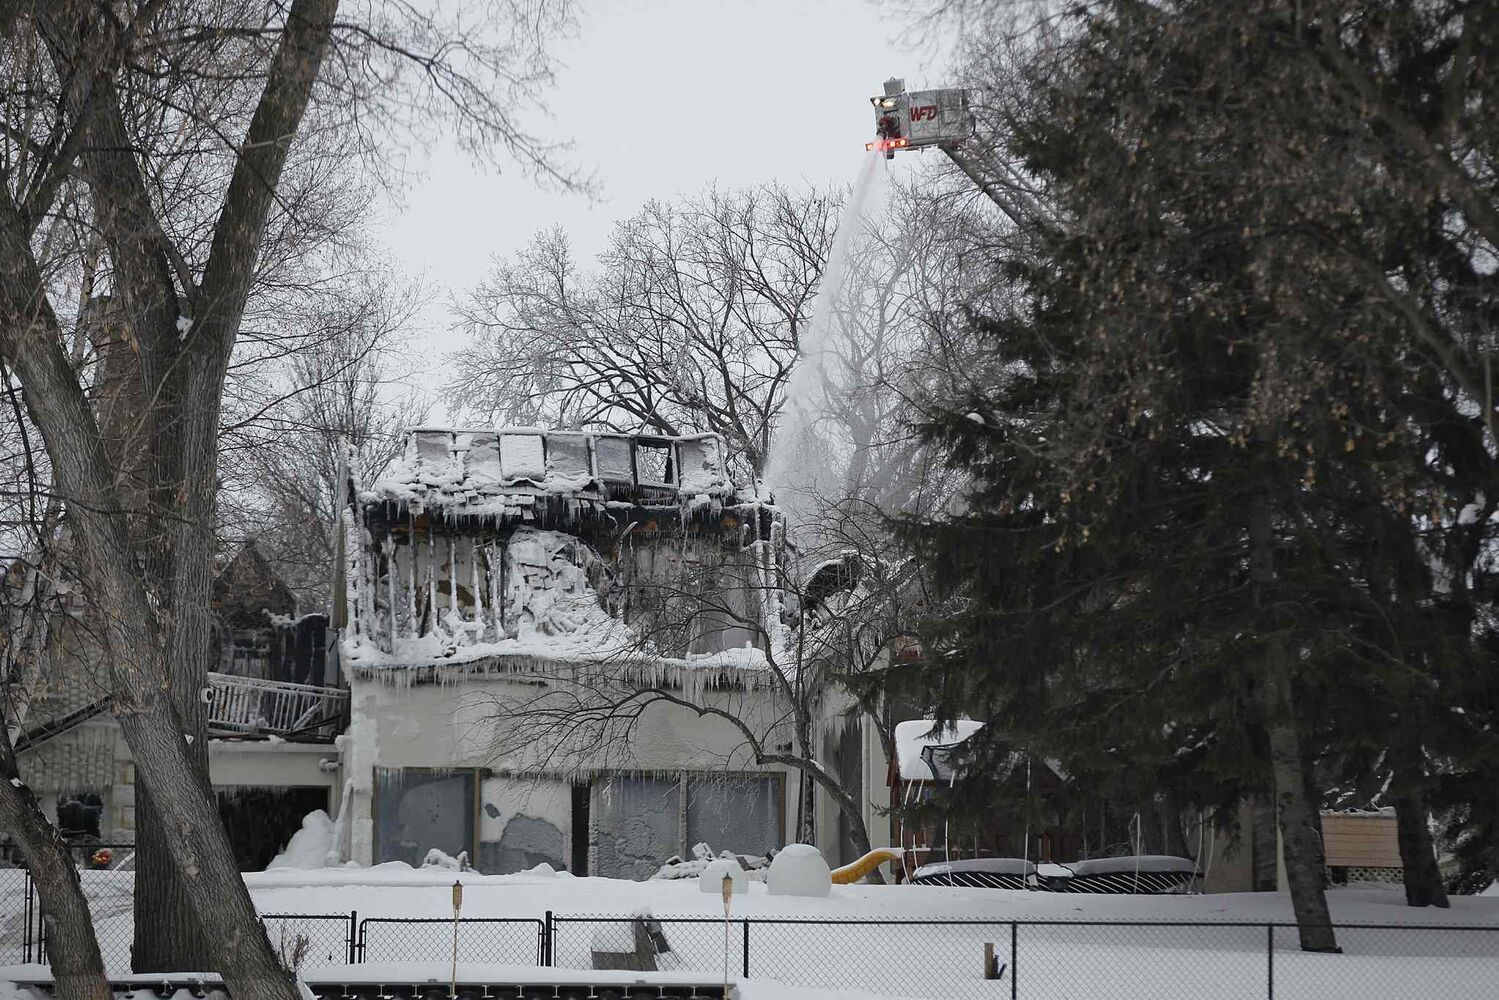 Firefighters work on extinguishing hotspots Sunday. (Winnipeg Free Press)